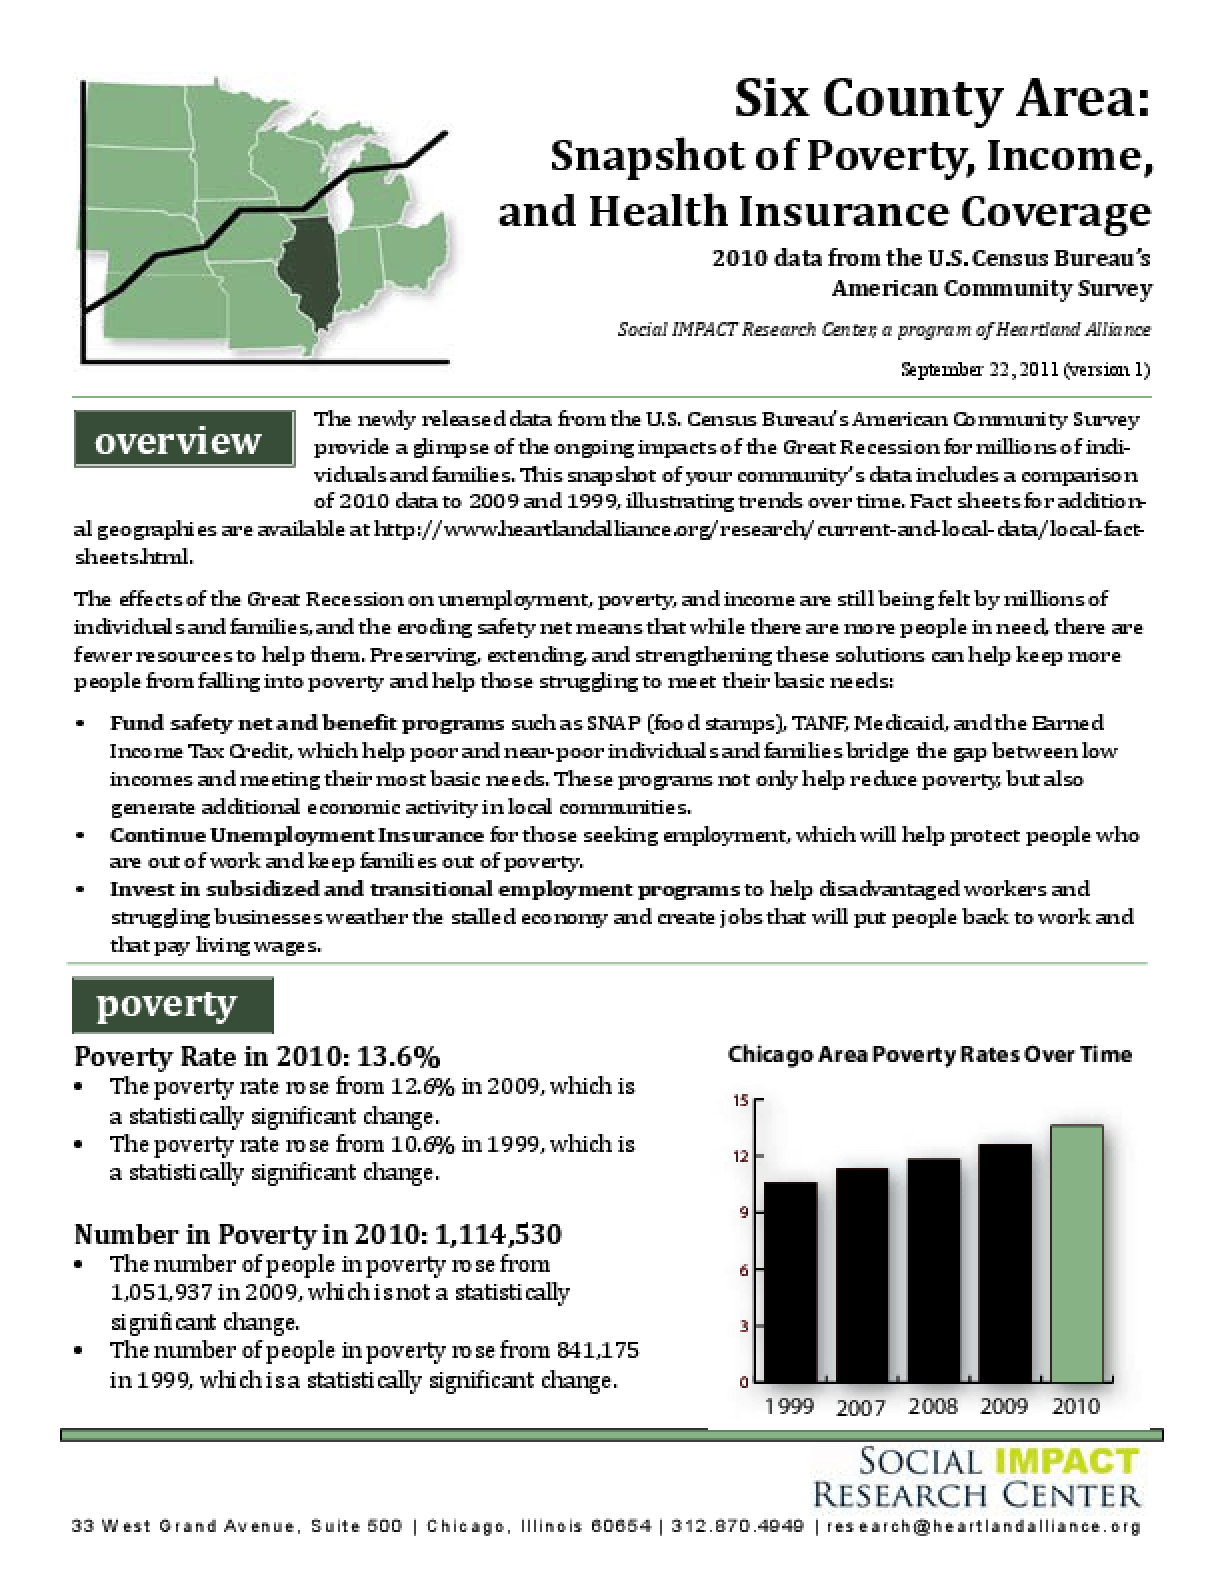 Chicago Region: Snapshot of Poverty, Income, and Health Insurance Coverage